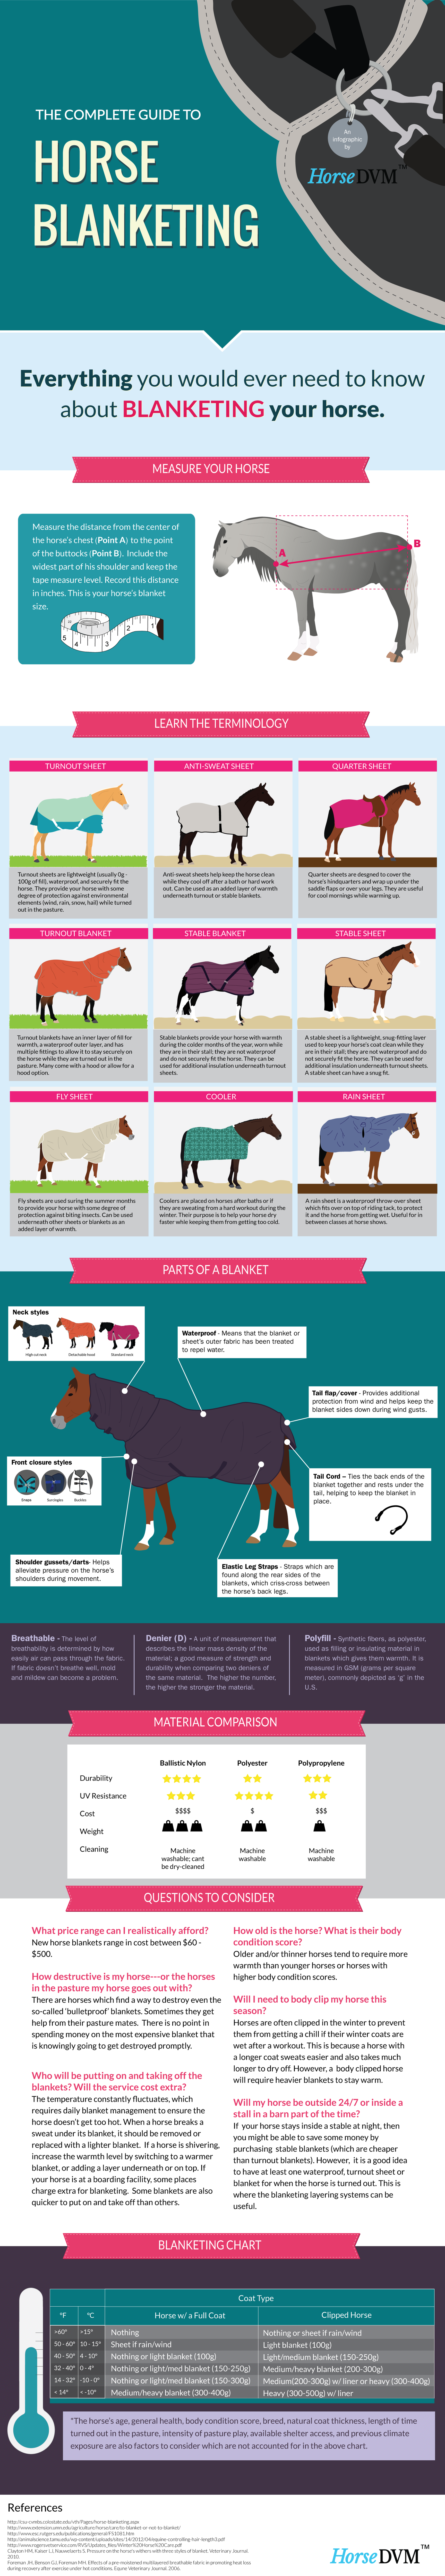 The One-Stop Guide to Horse Blanketing - Infographic